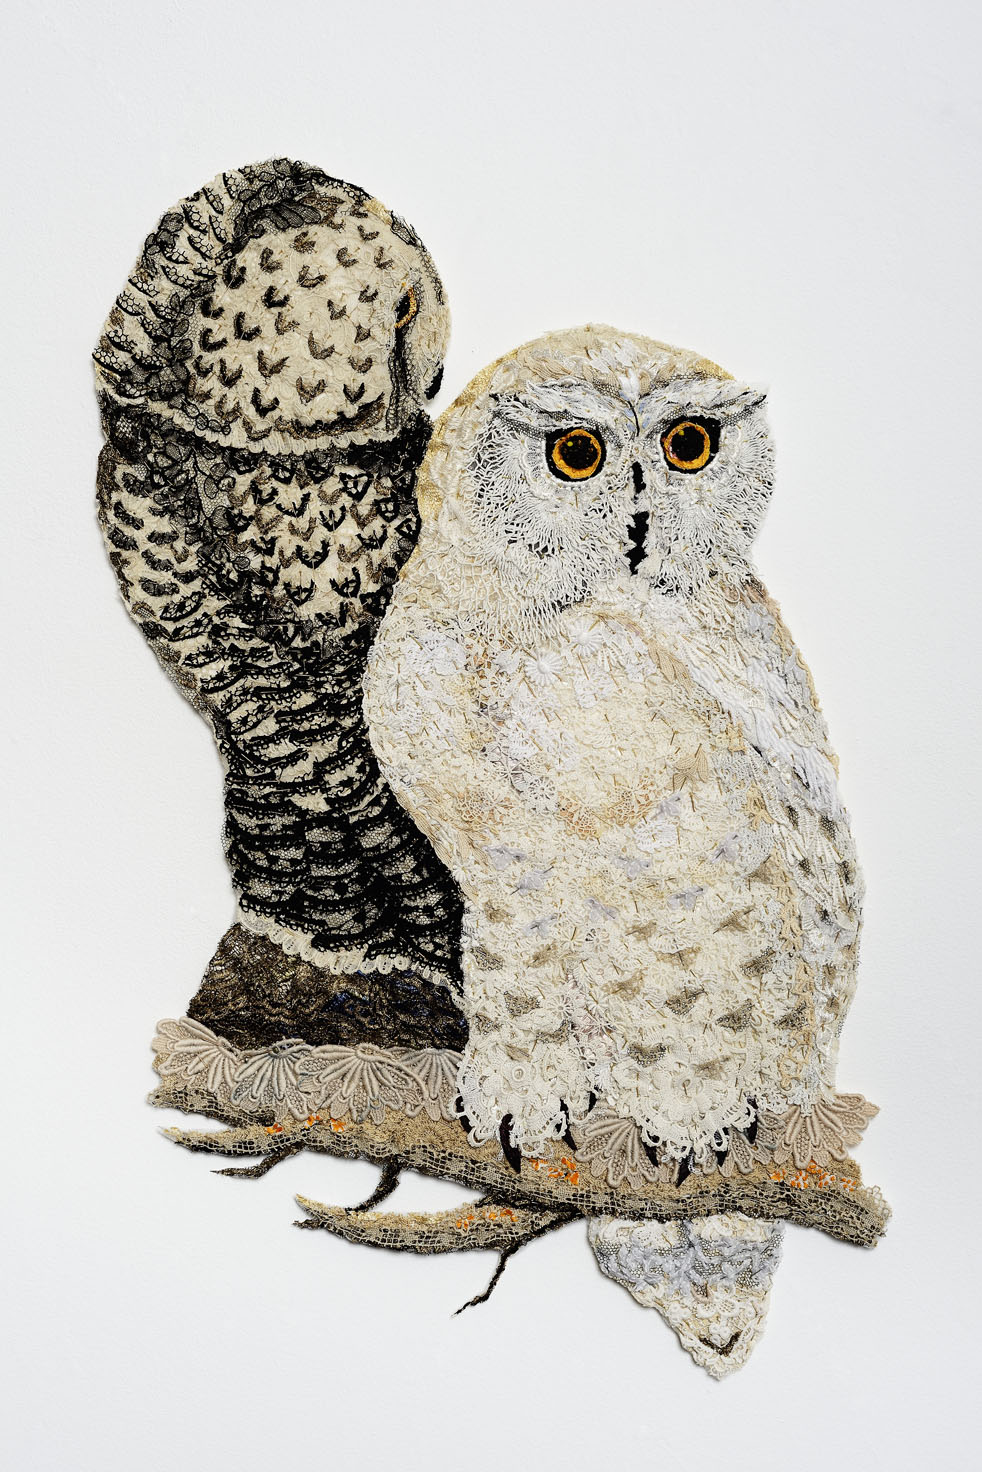 Bubo & Snow 2014 after Edward Lear 1832